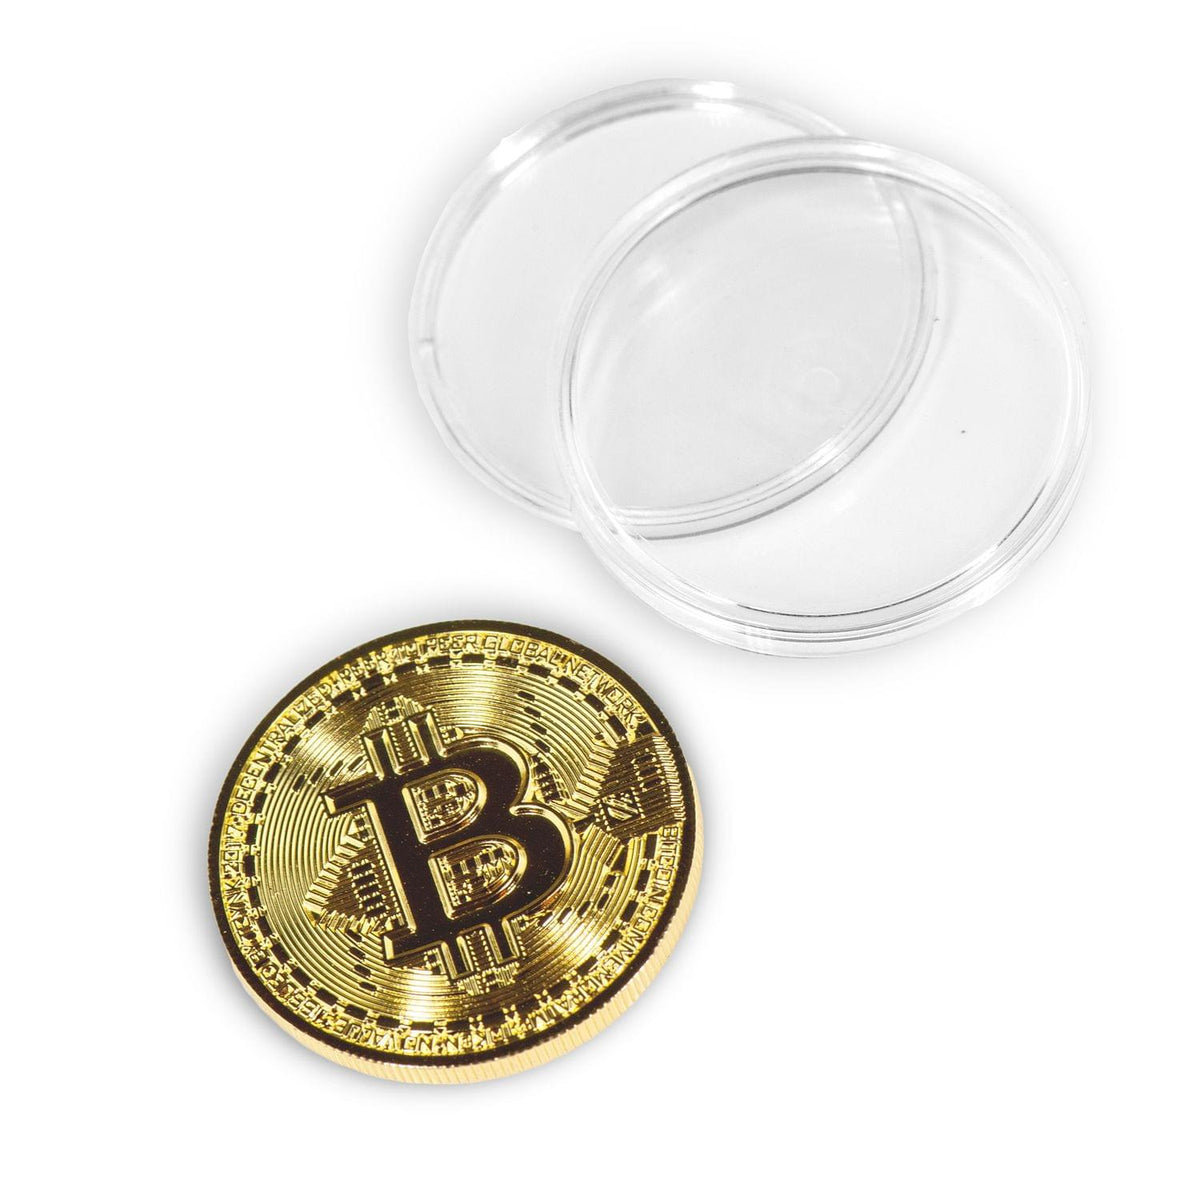 Bitcoin Collectible|Gold Plated Commemorative Blockchain Coin| Collector's Coin